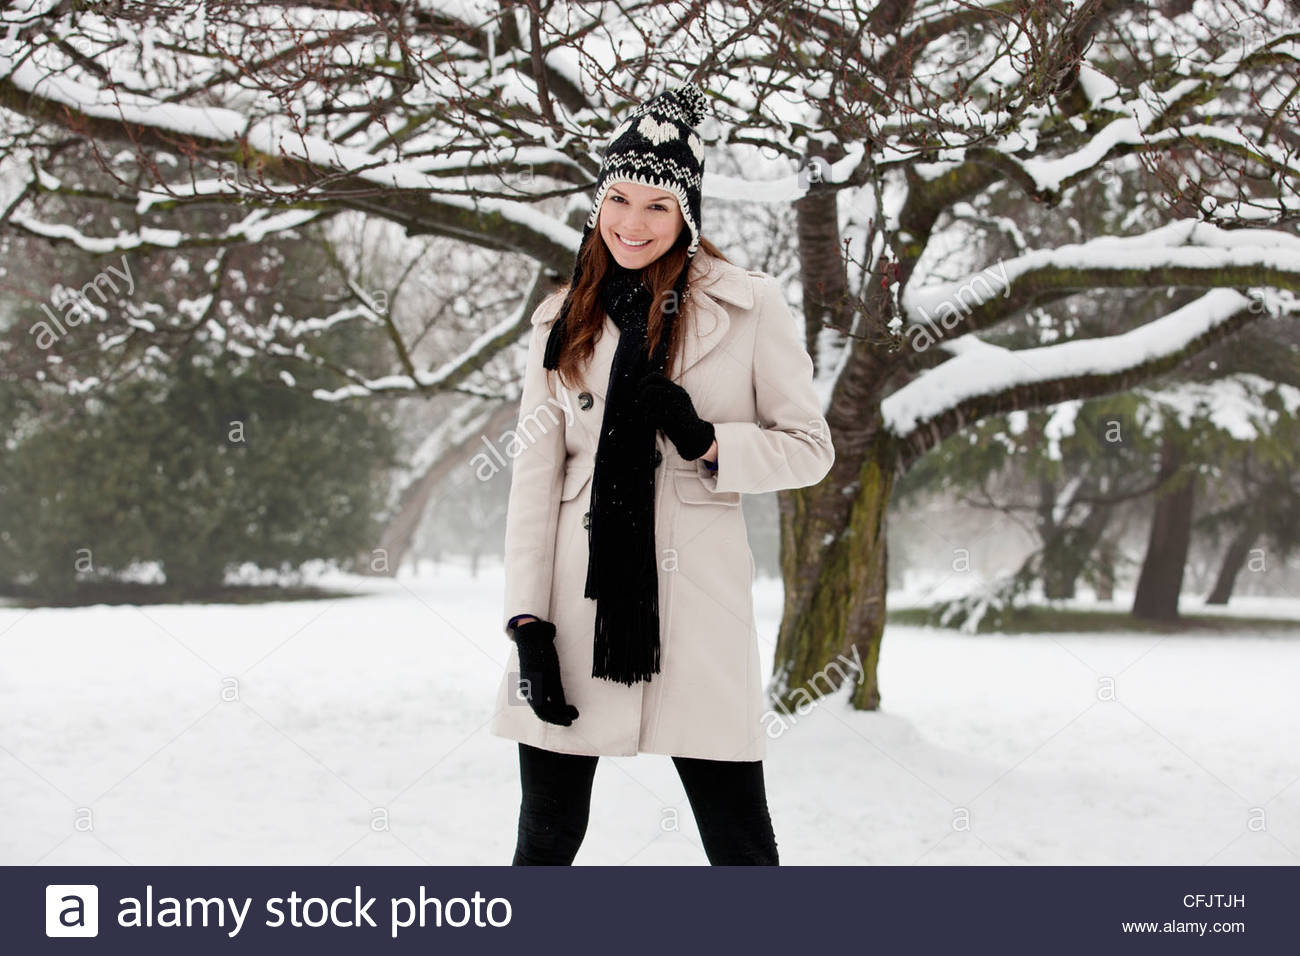 A young woman standing in the snow, smiling - Stock Image